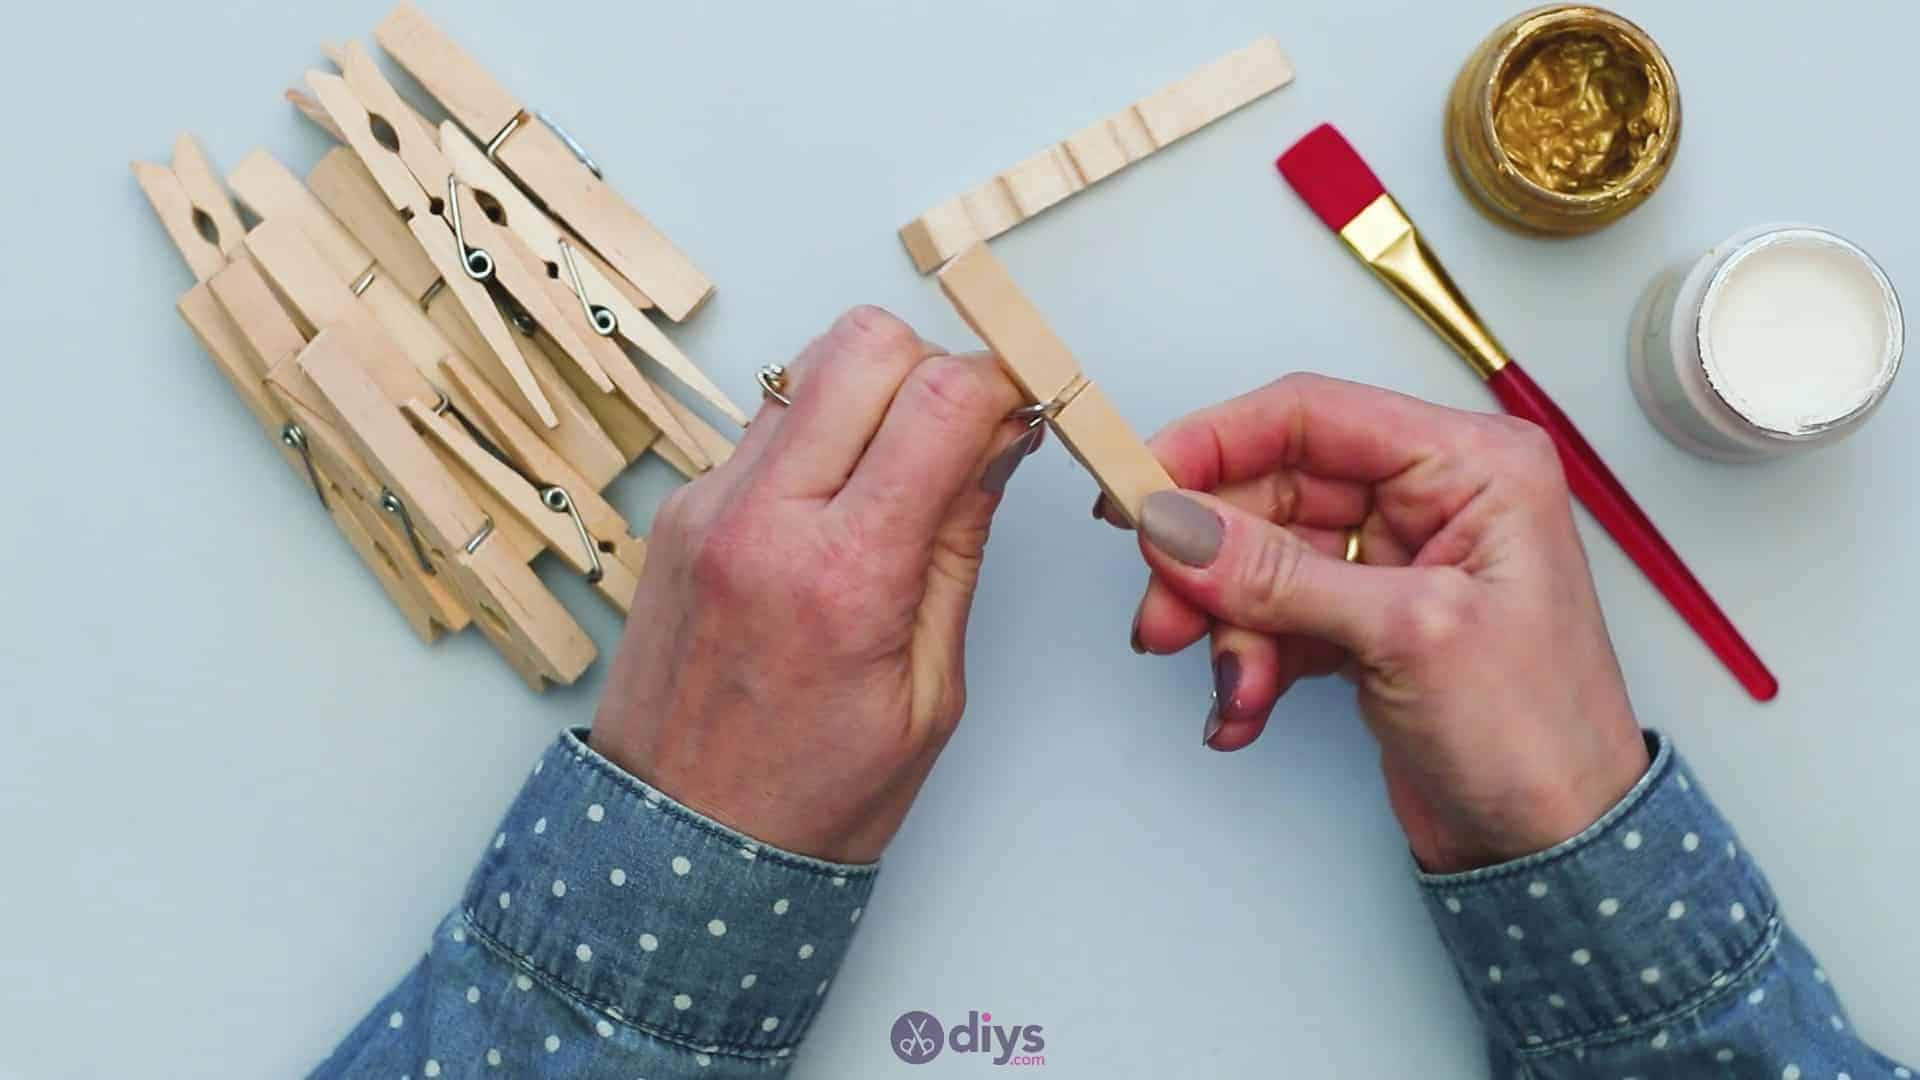 Diy clothespin art step 1b